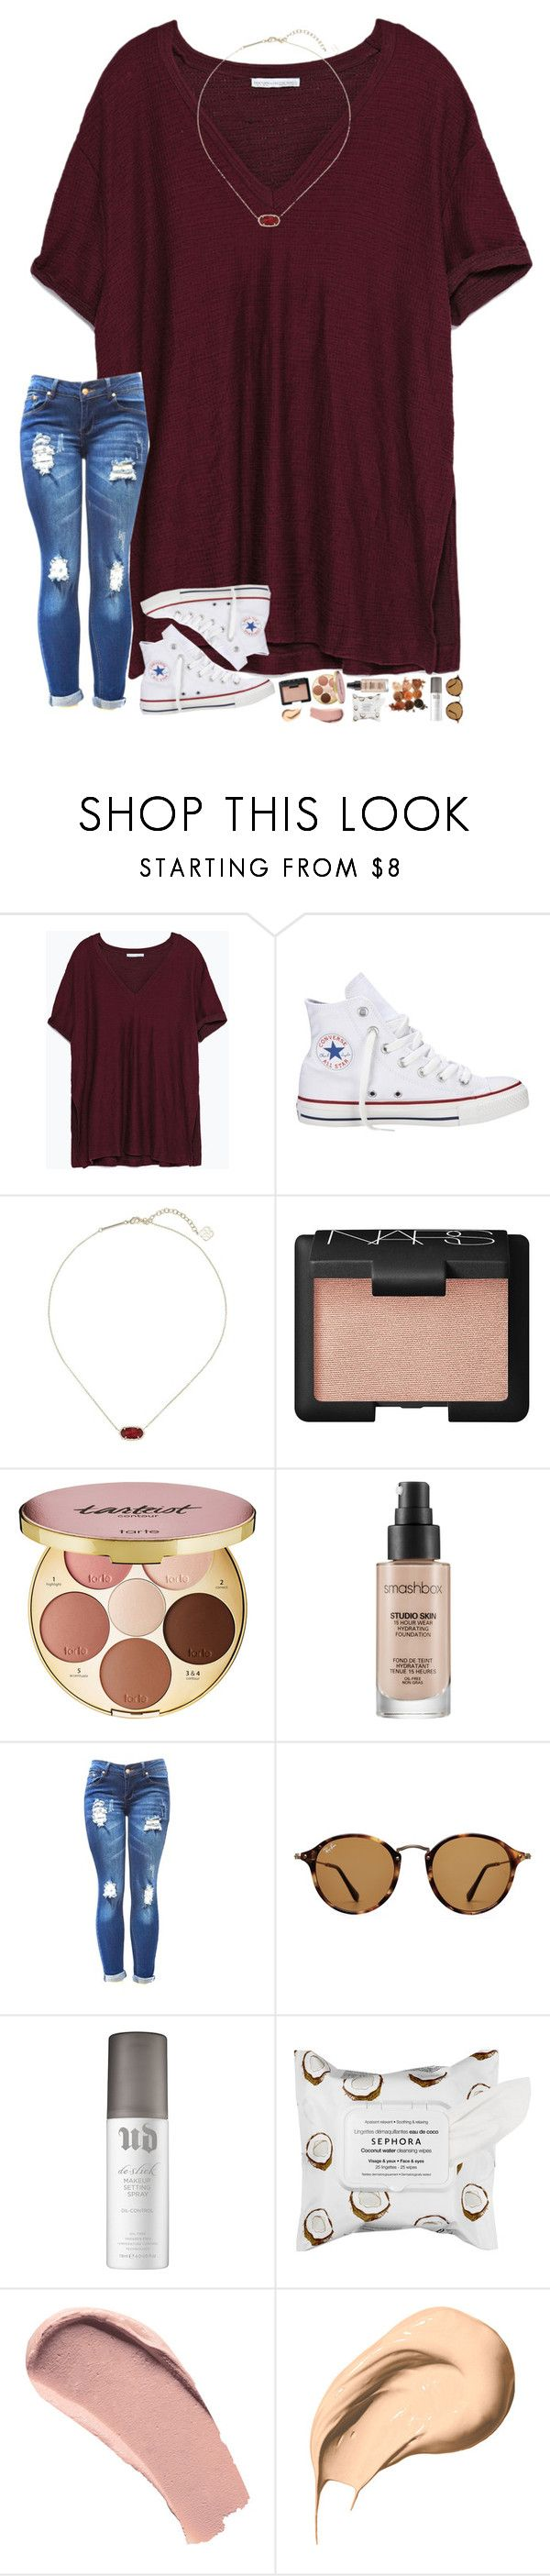 first day of state competition today! by hopemarlee ❤ liked on Polyvore featuring Zara, Converse, Kendra Scott, NARS Cosmetics, tarte, Smashbox, Ray-Ban, Urban Decay, Sephora Collection and Burberry